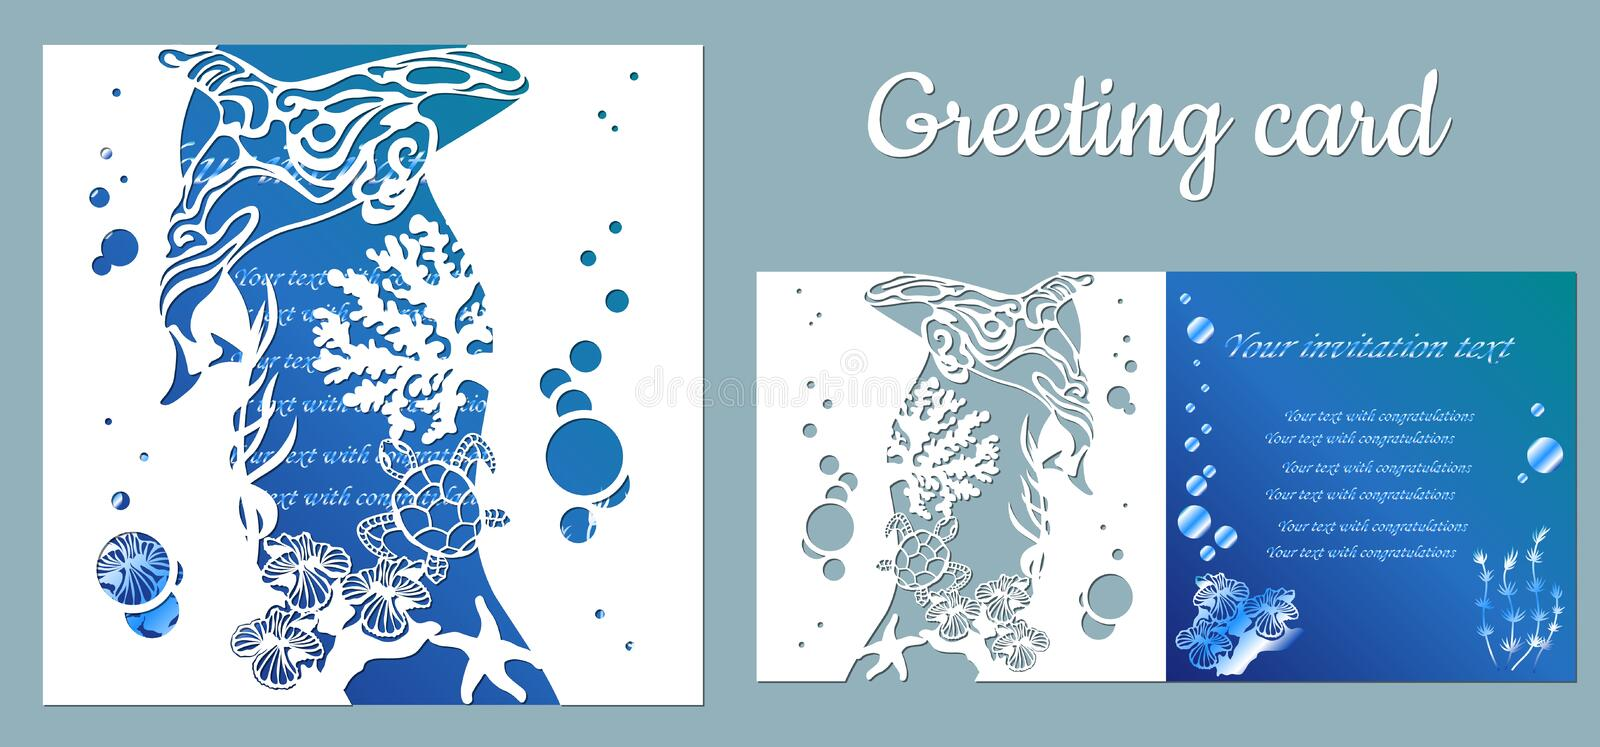 Template for making a postcard. vector image for laser cutting and plotter printing. fauna with marine animals.  royalty free illustration